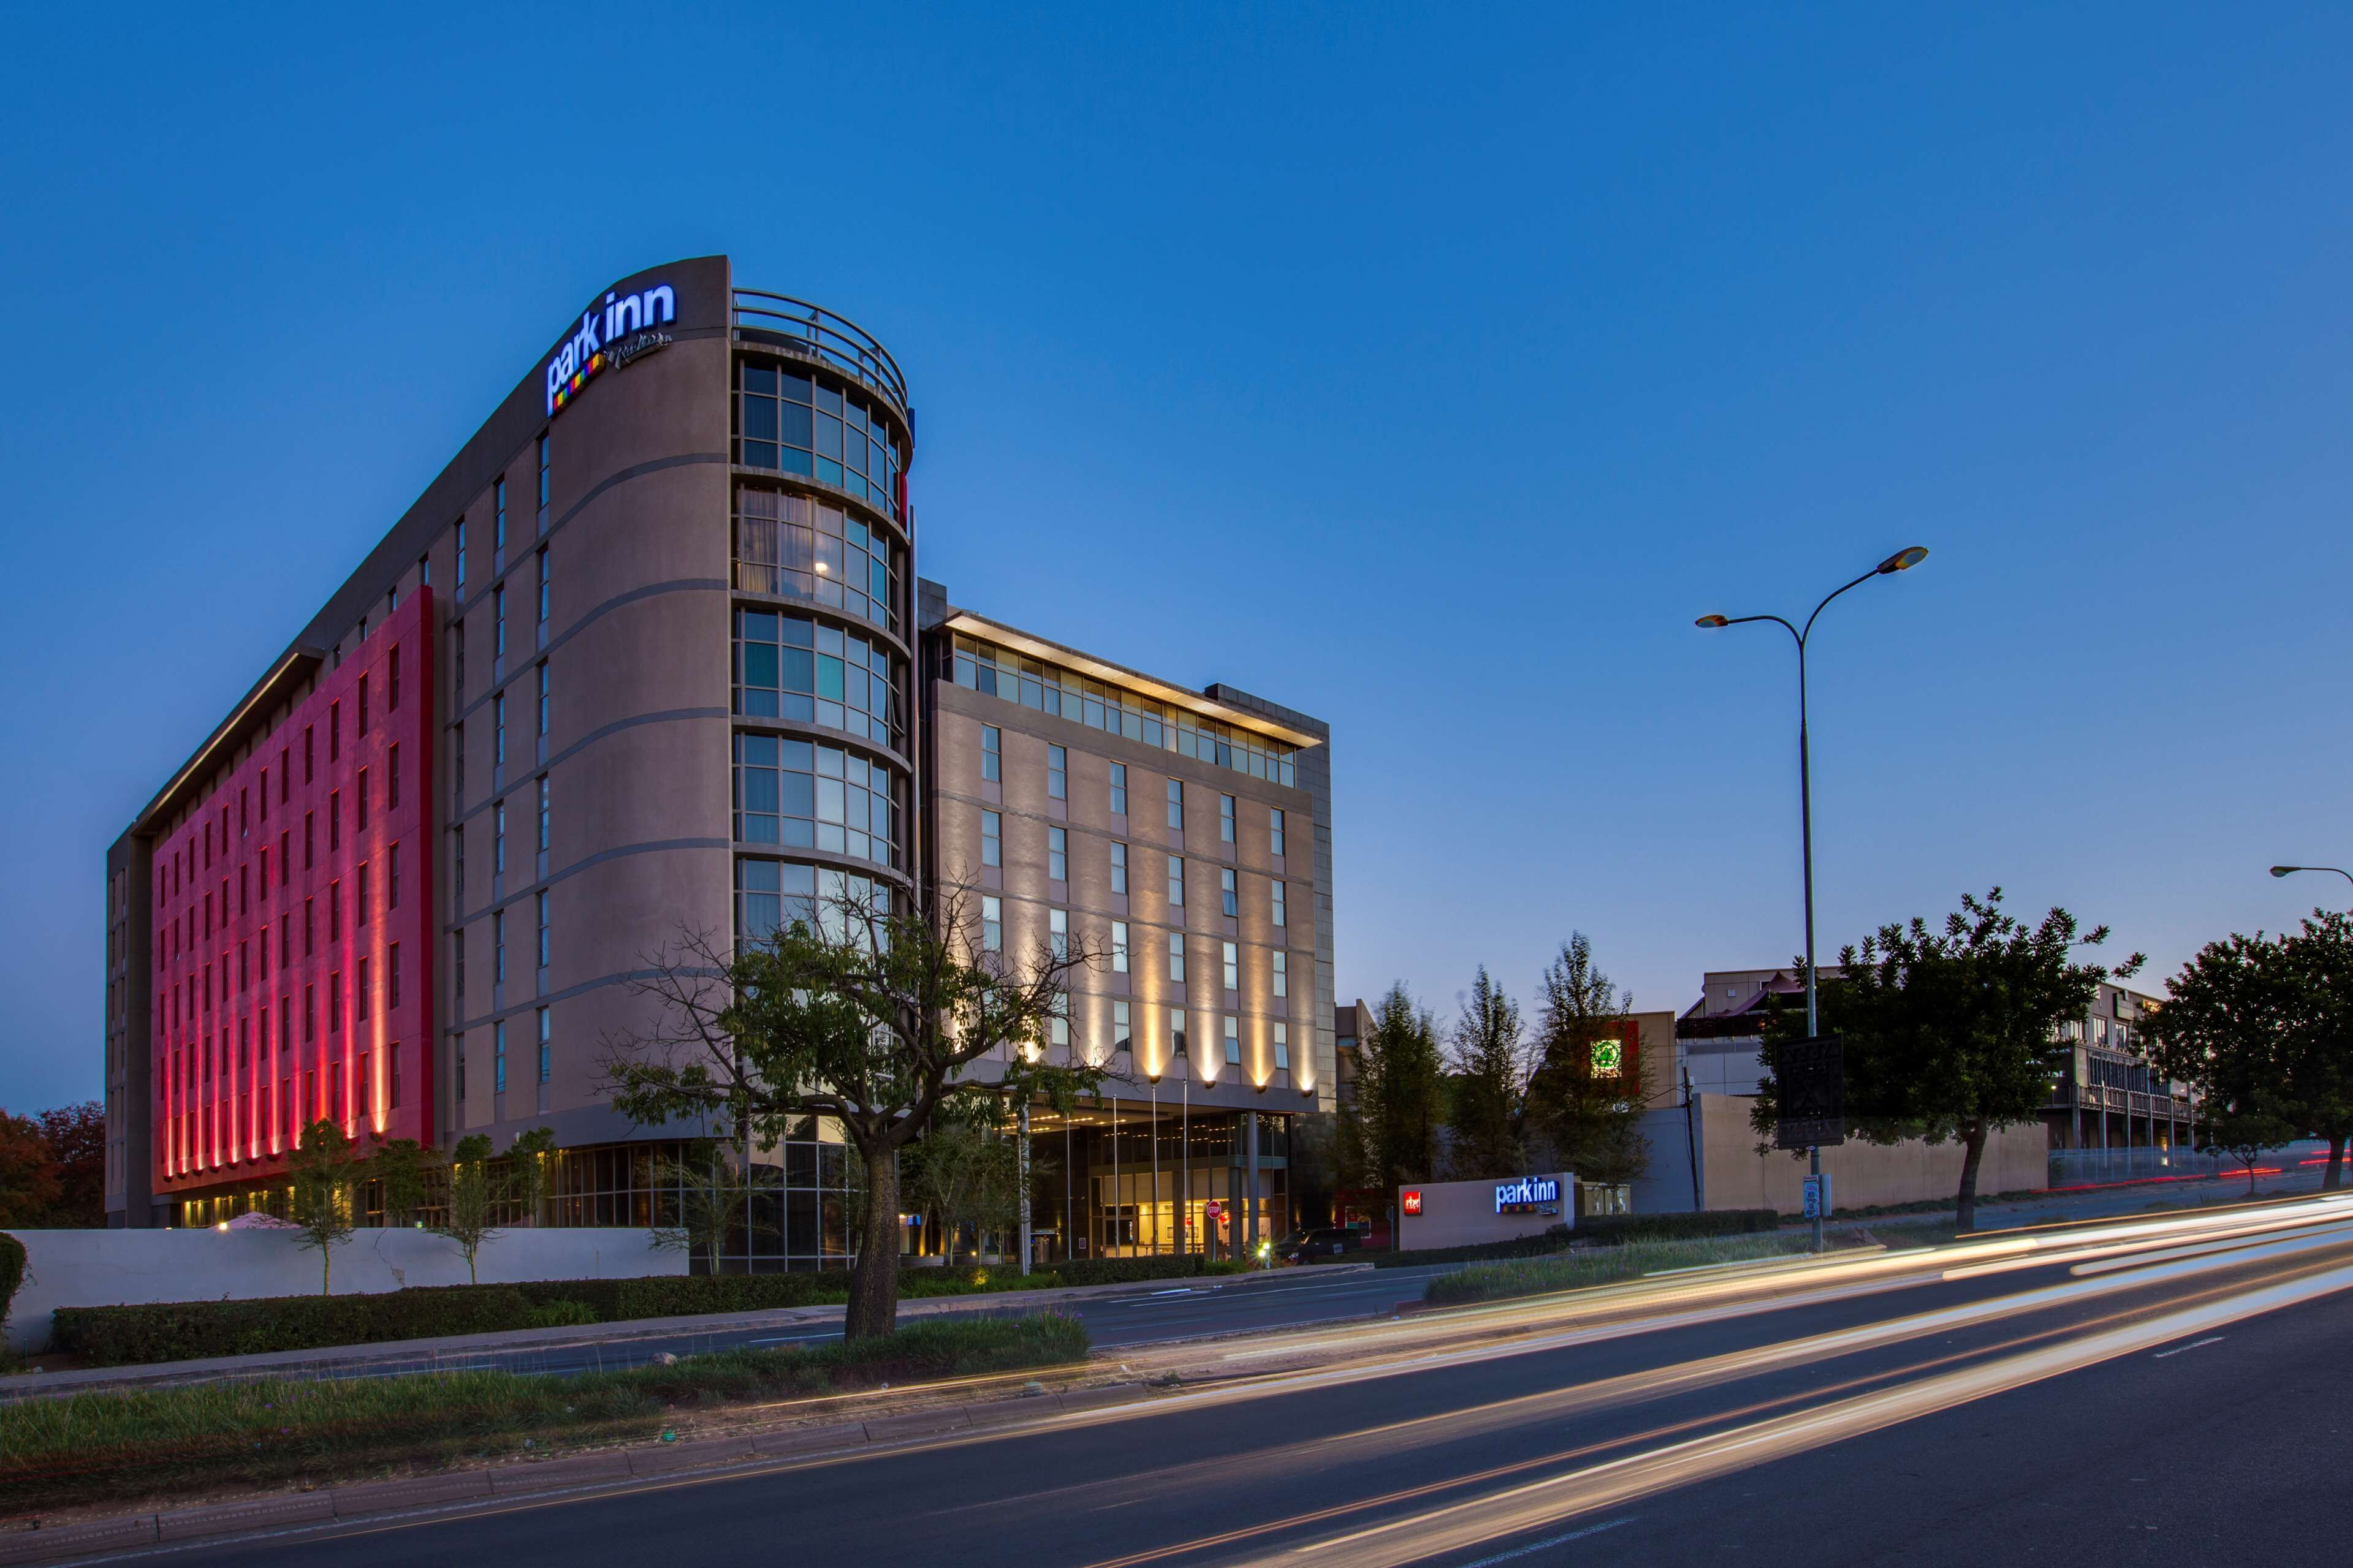 Park Inn By Radisson Sandton